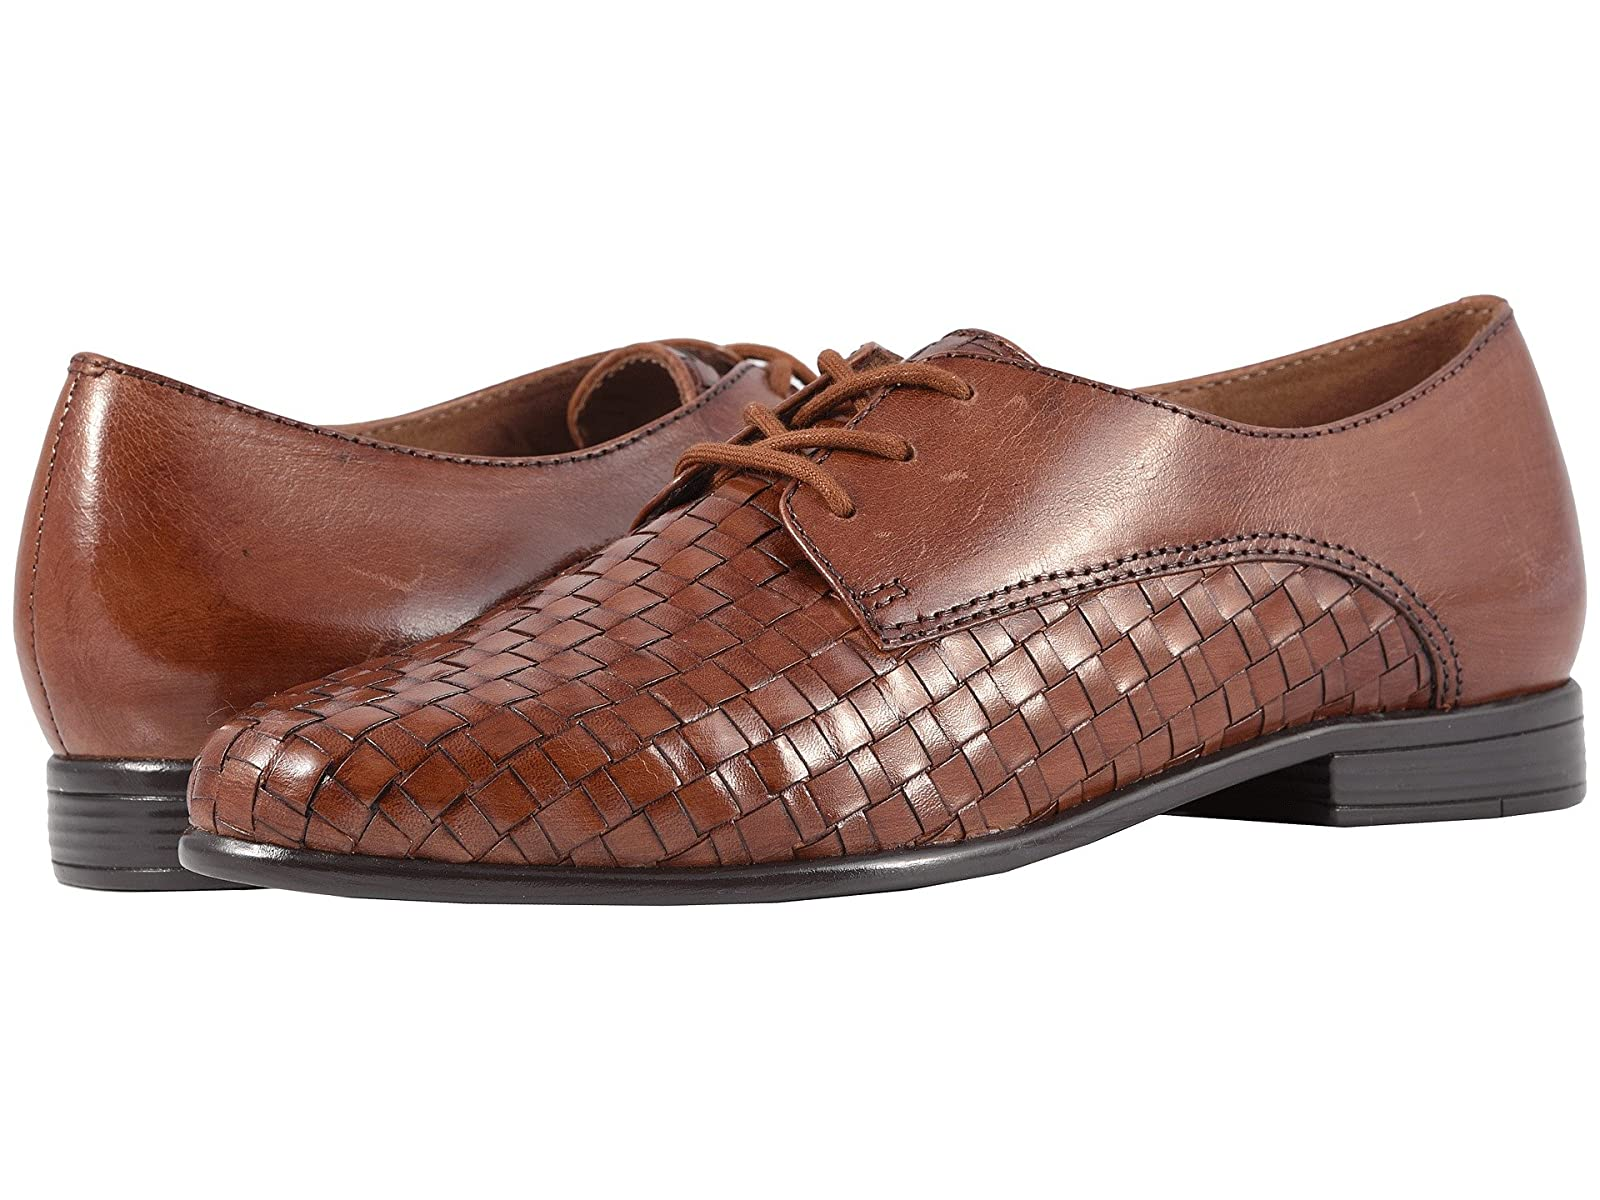 Trotters LizzieAtmospheric grades have affordable shoes